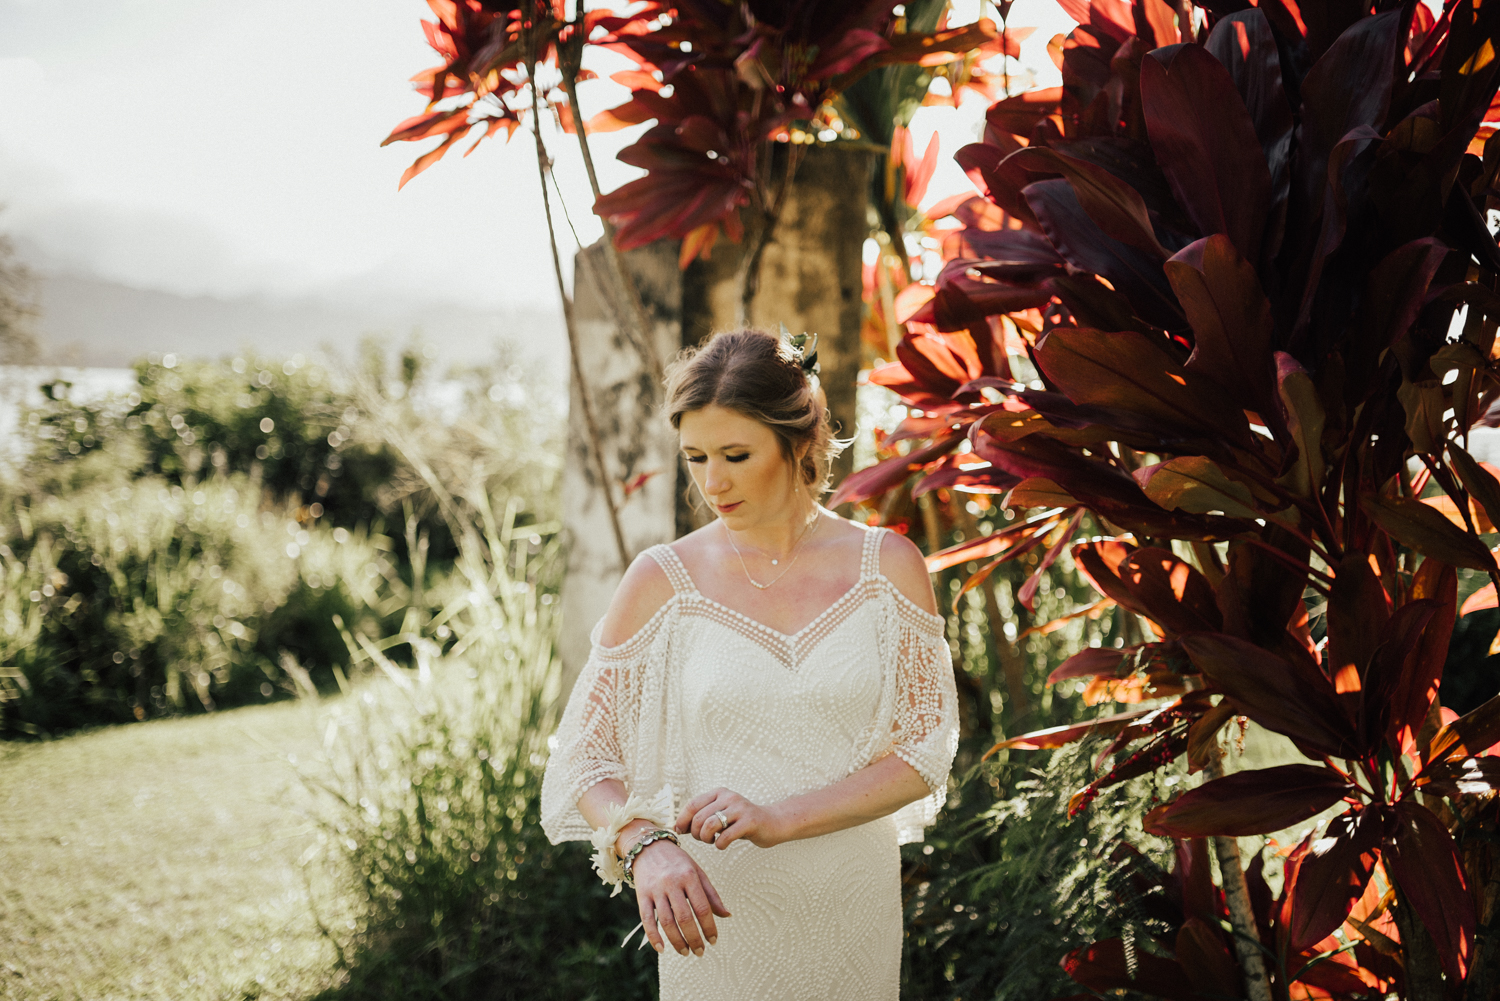 Kauai-elopement-photographer-65.jpg